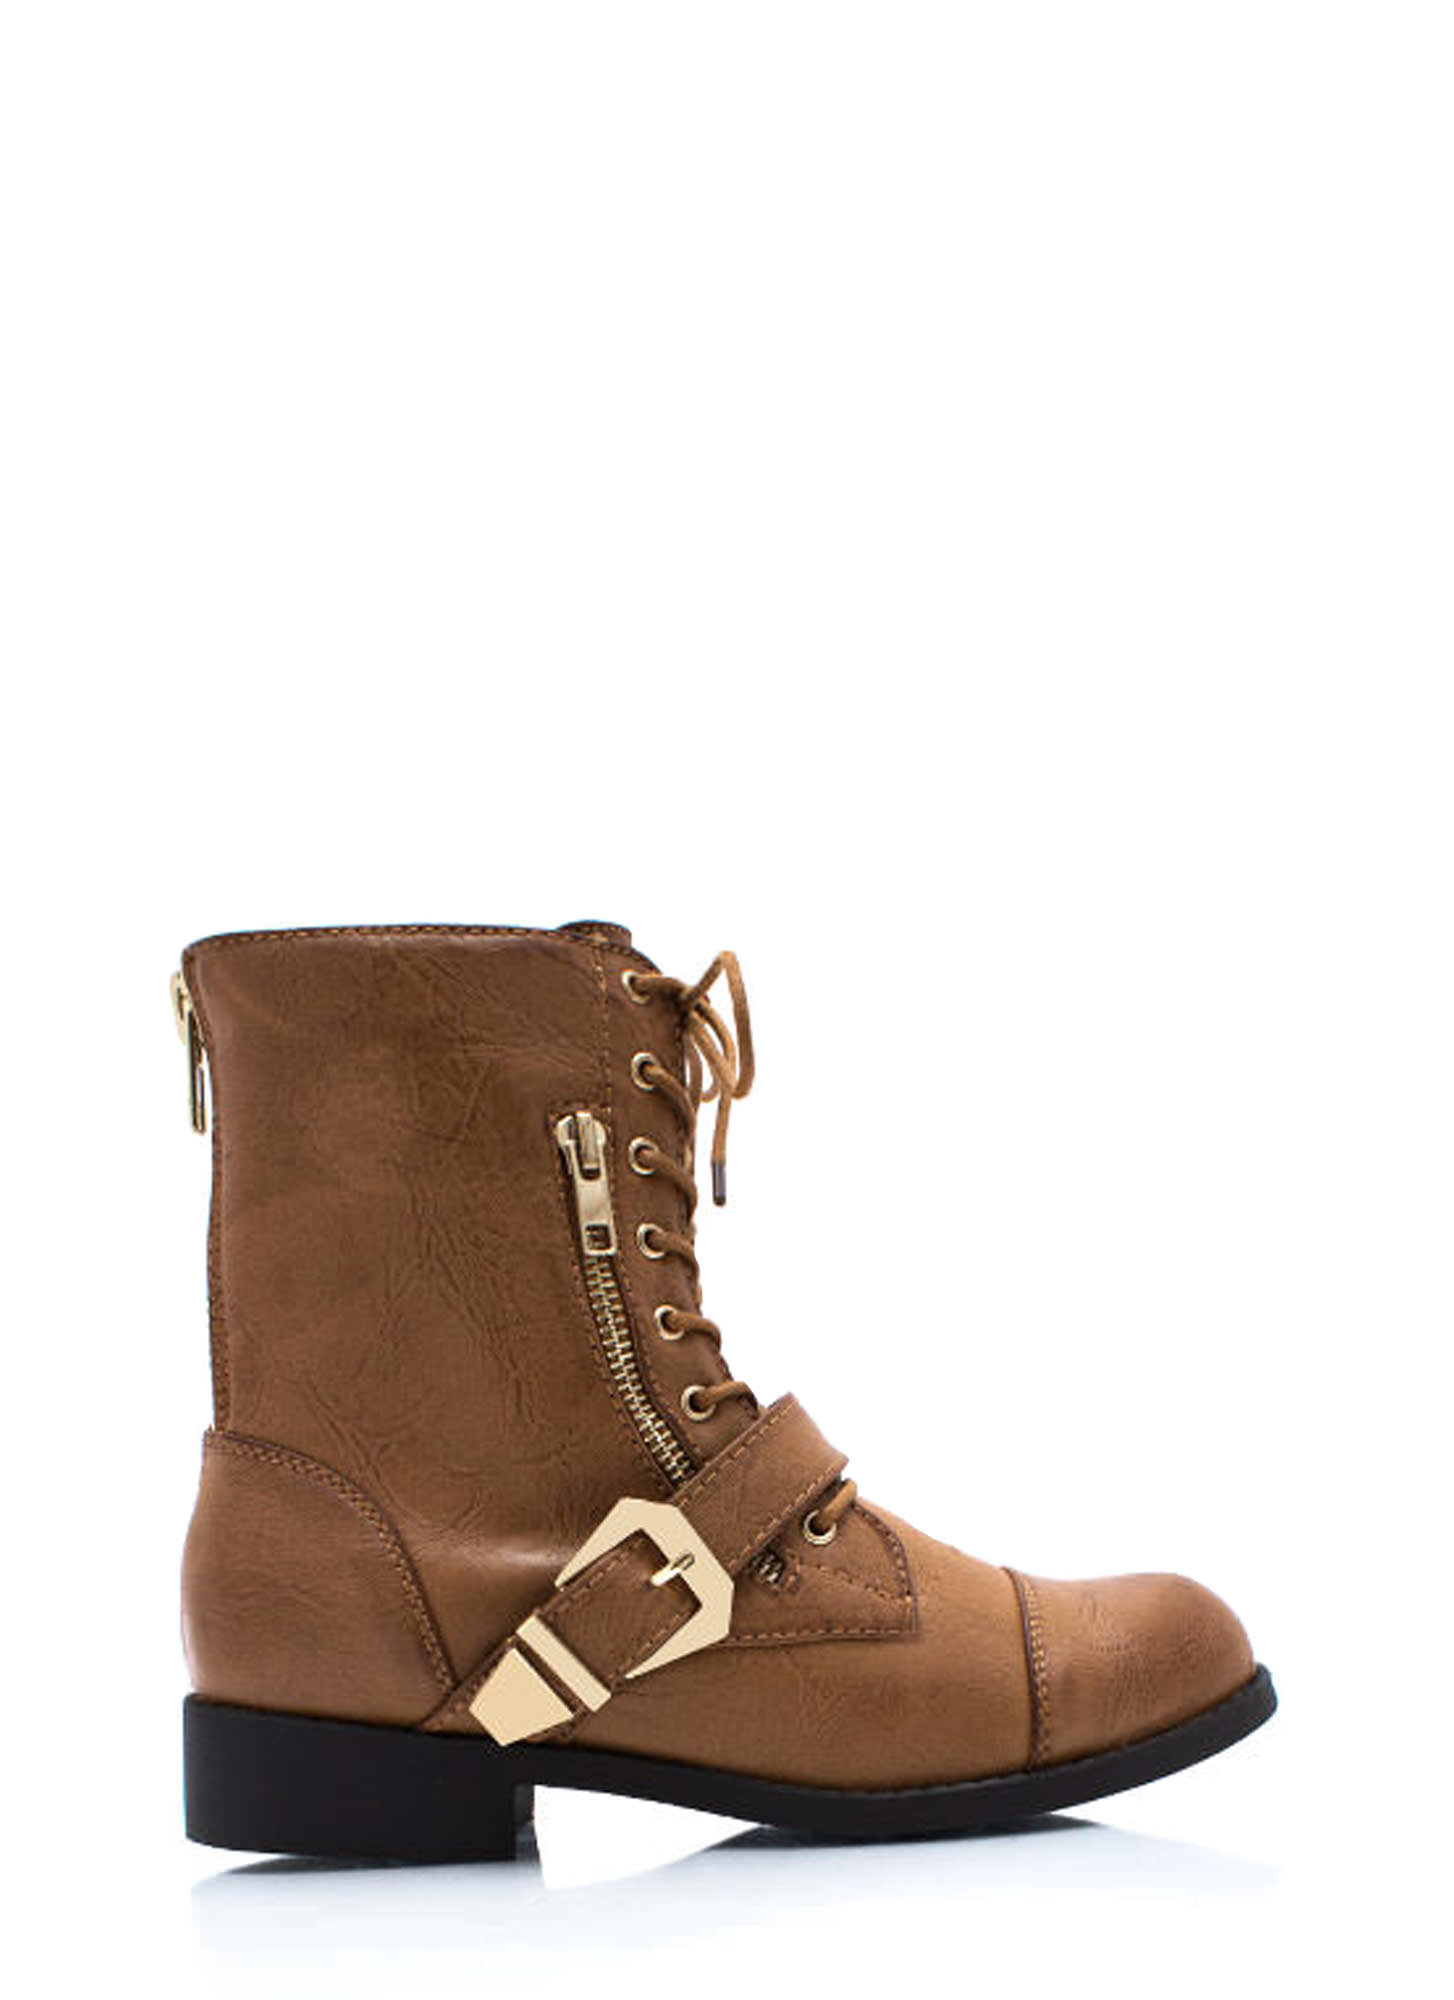 Zip It Good Combat Boots CHESTNUT